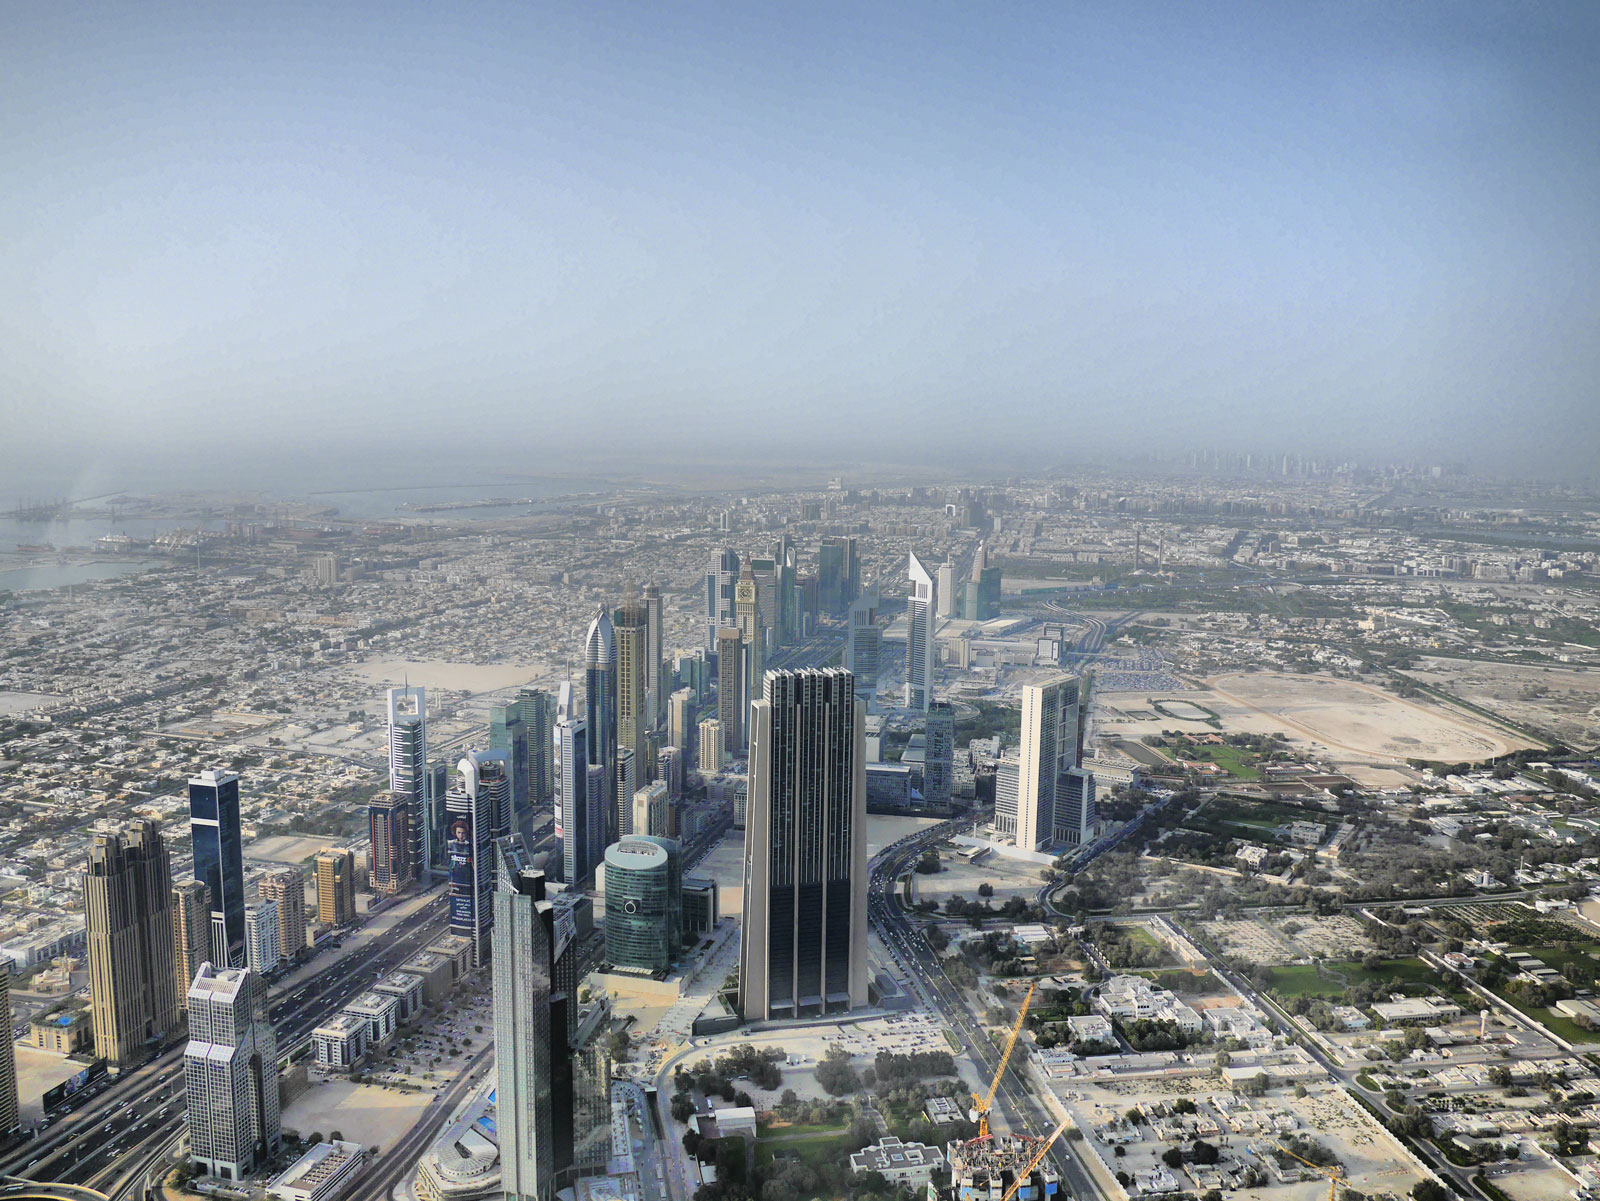 At the Top: The View from Burj Khalifa - Dubai, United Arab Emirates